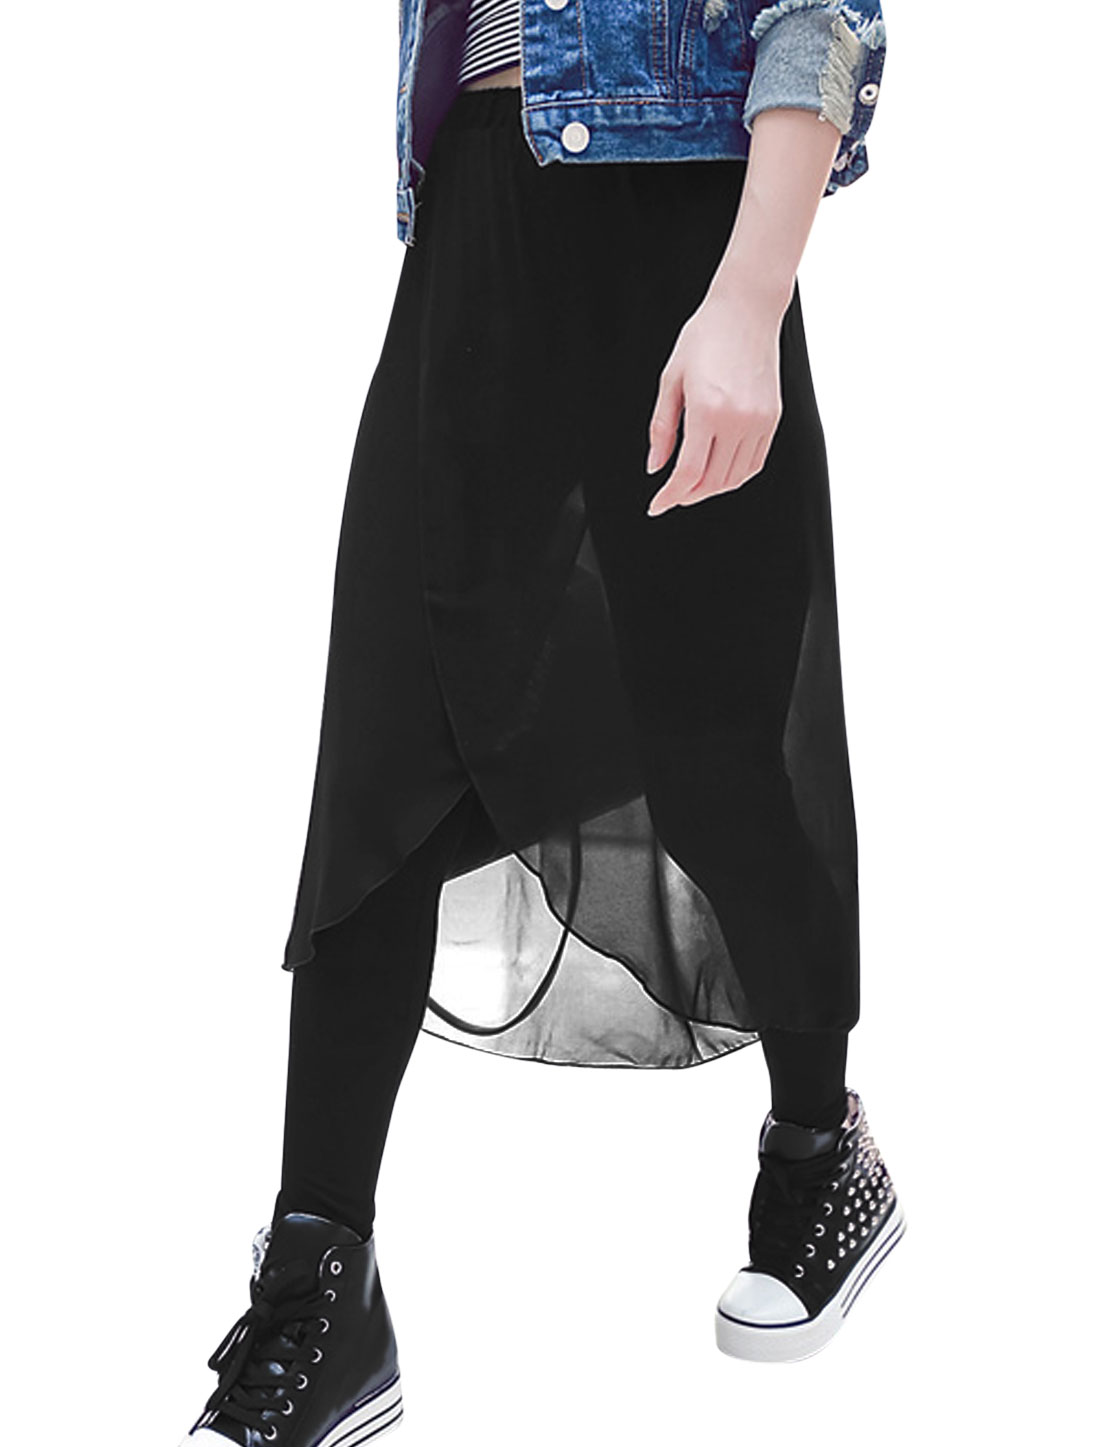 Lady Chiffon Panel Slim Fit Fashionable Skort Black XS